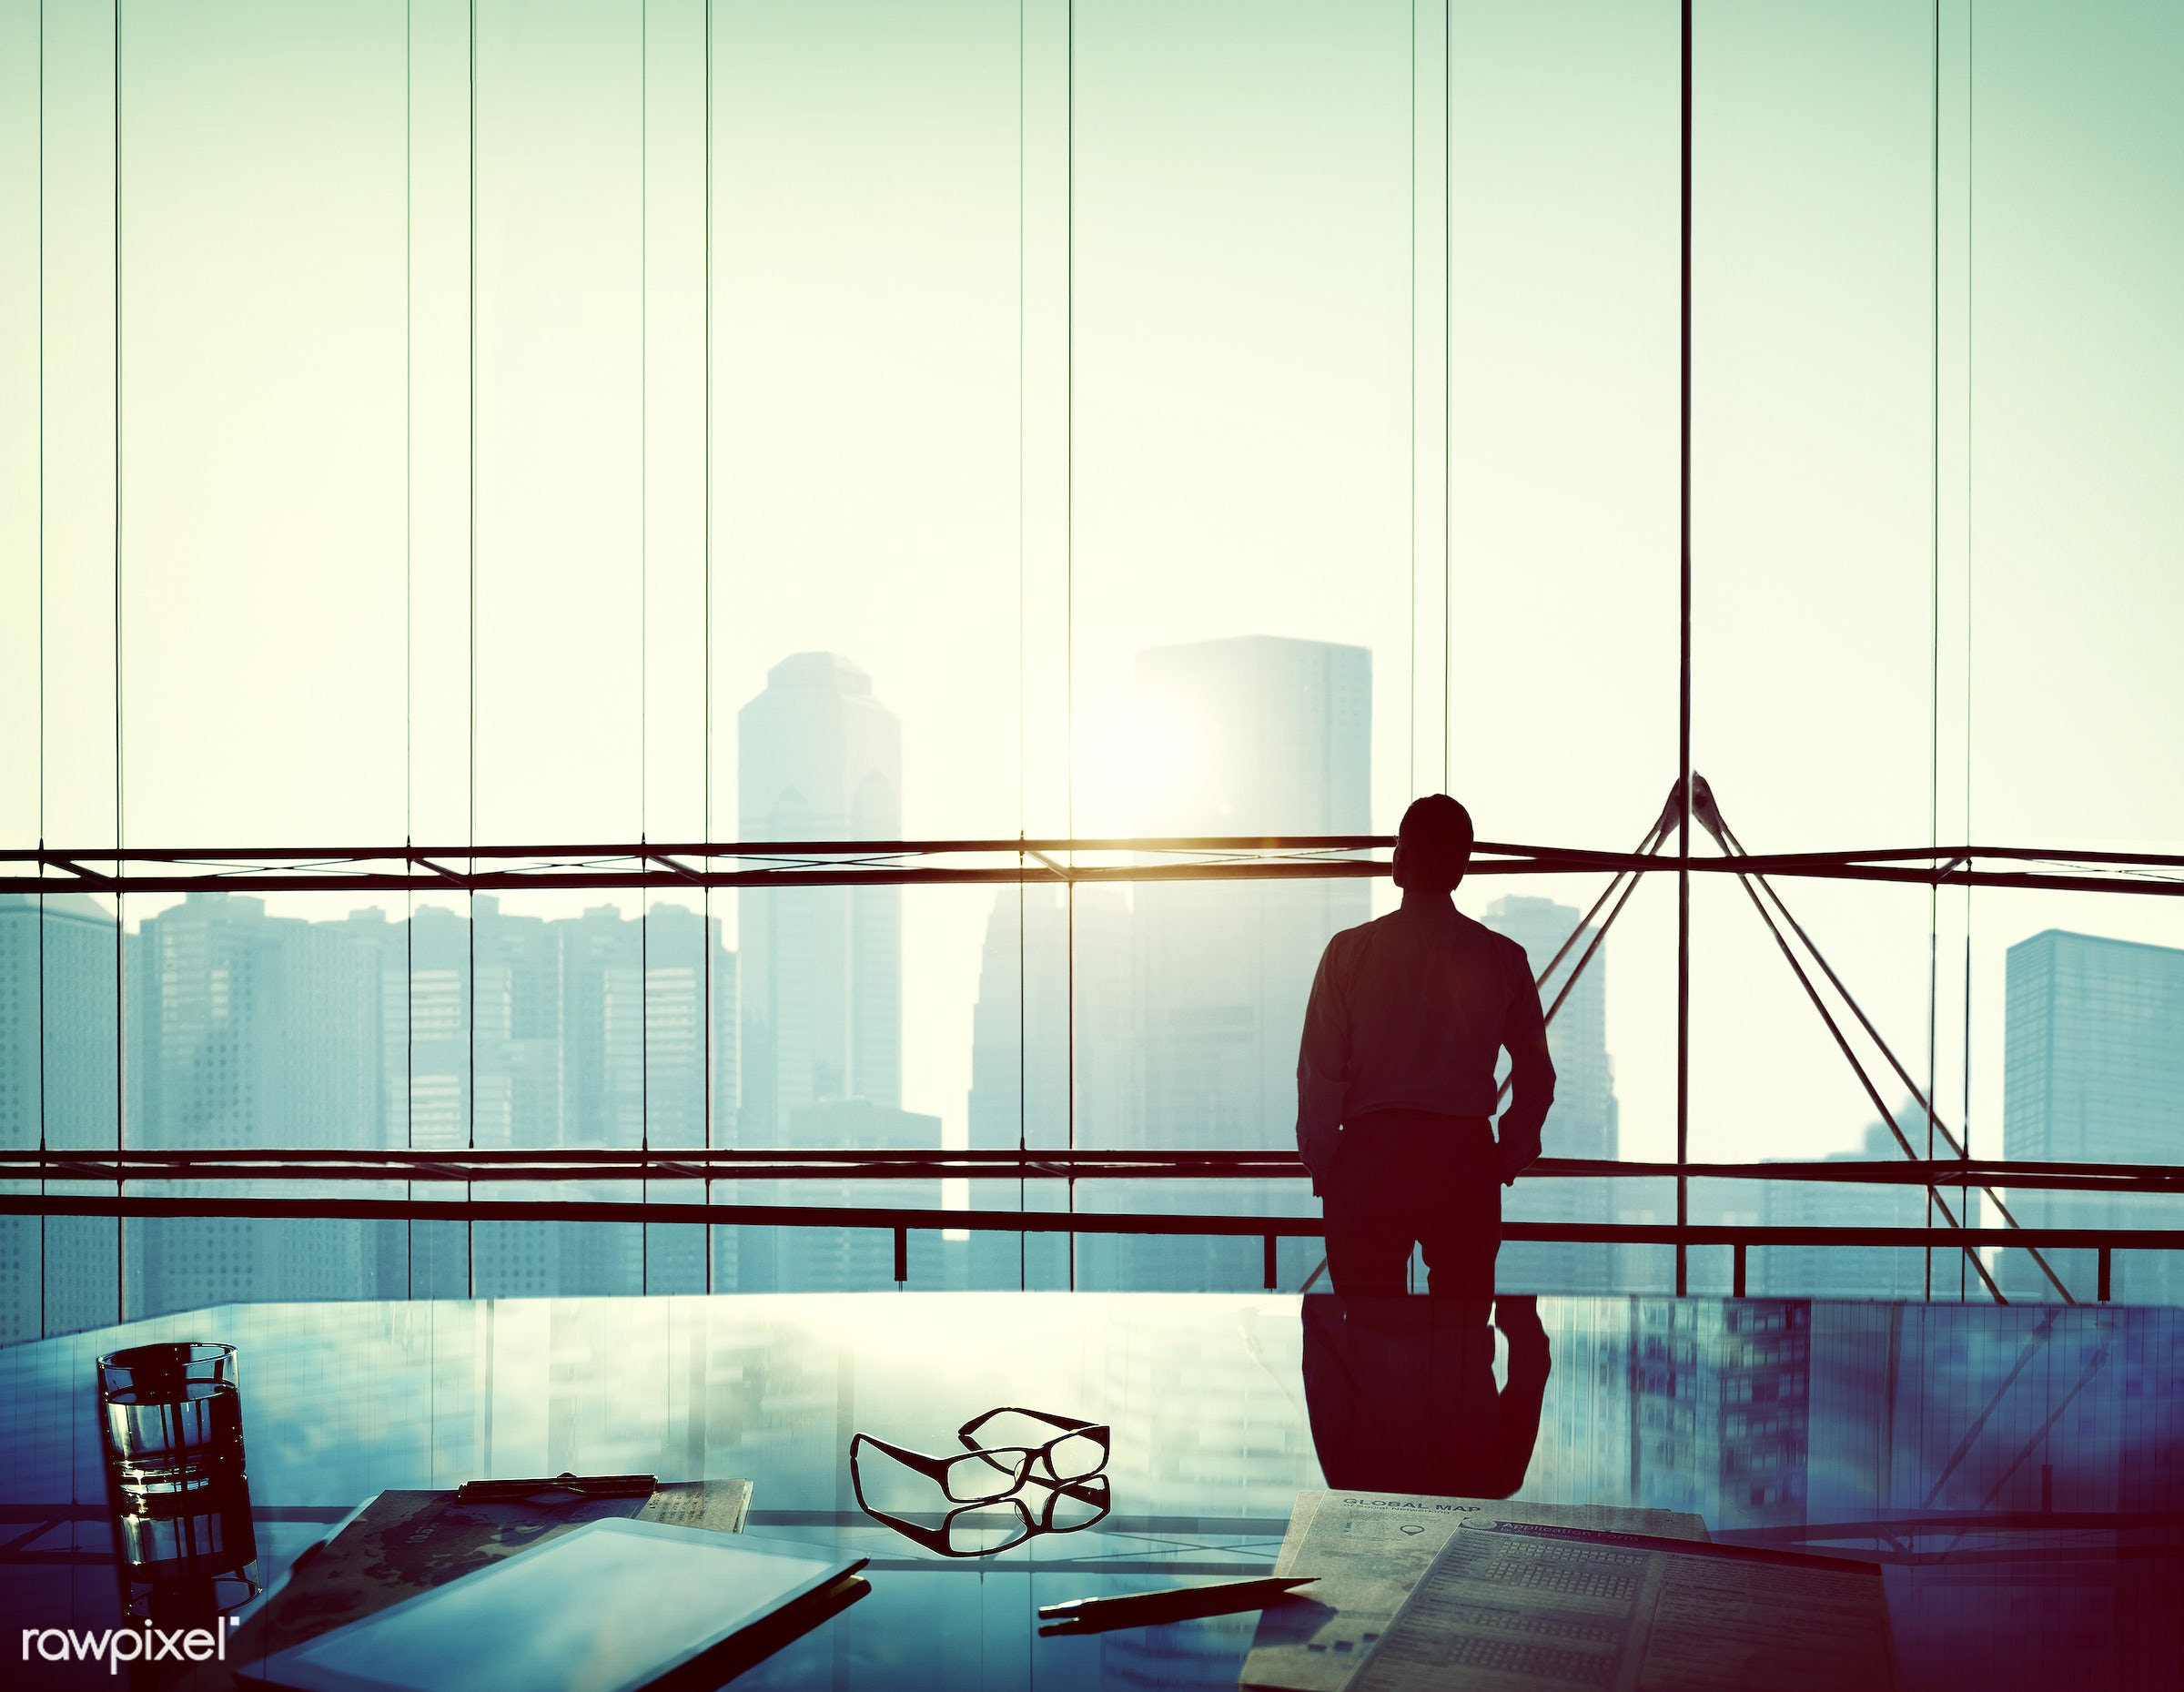 alone, aspiration, backlit, boss, building, business, businessman, city, cityscape, contemplating, contemplation, day...